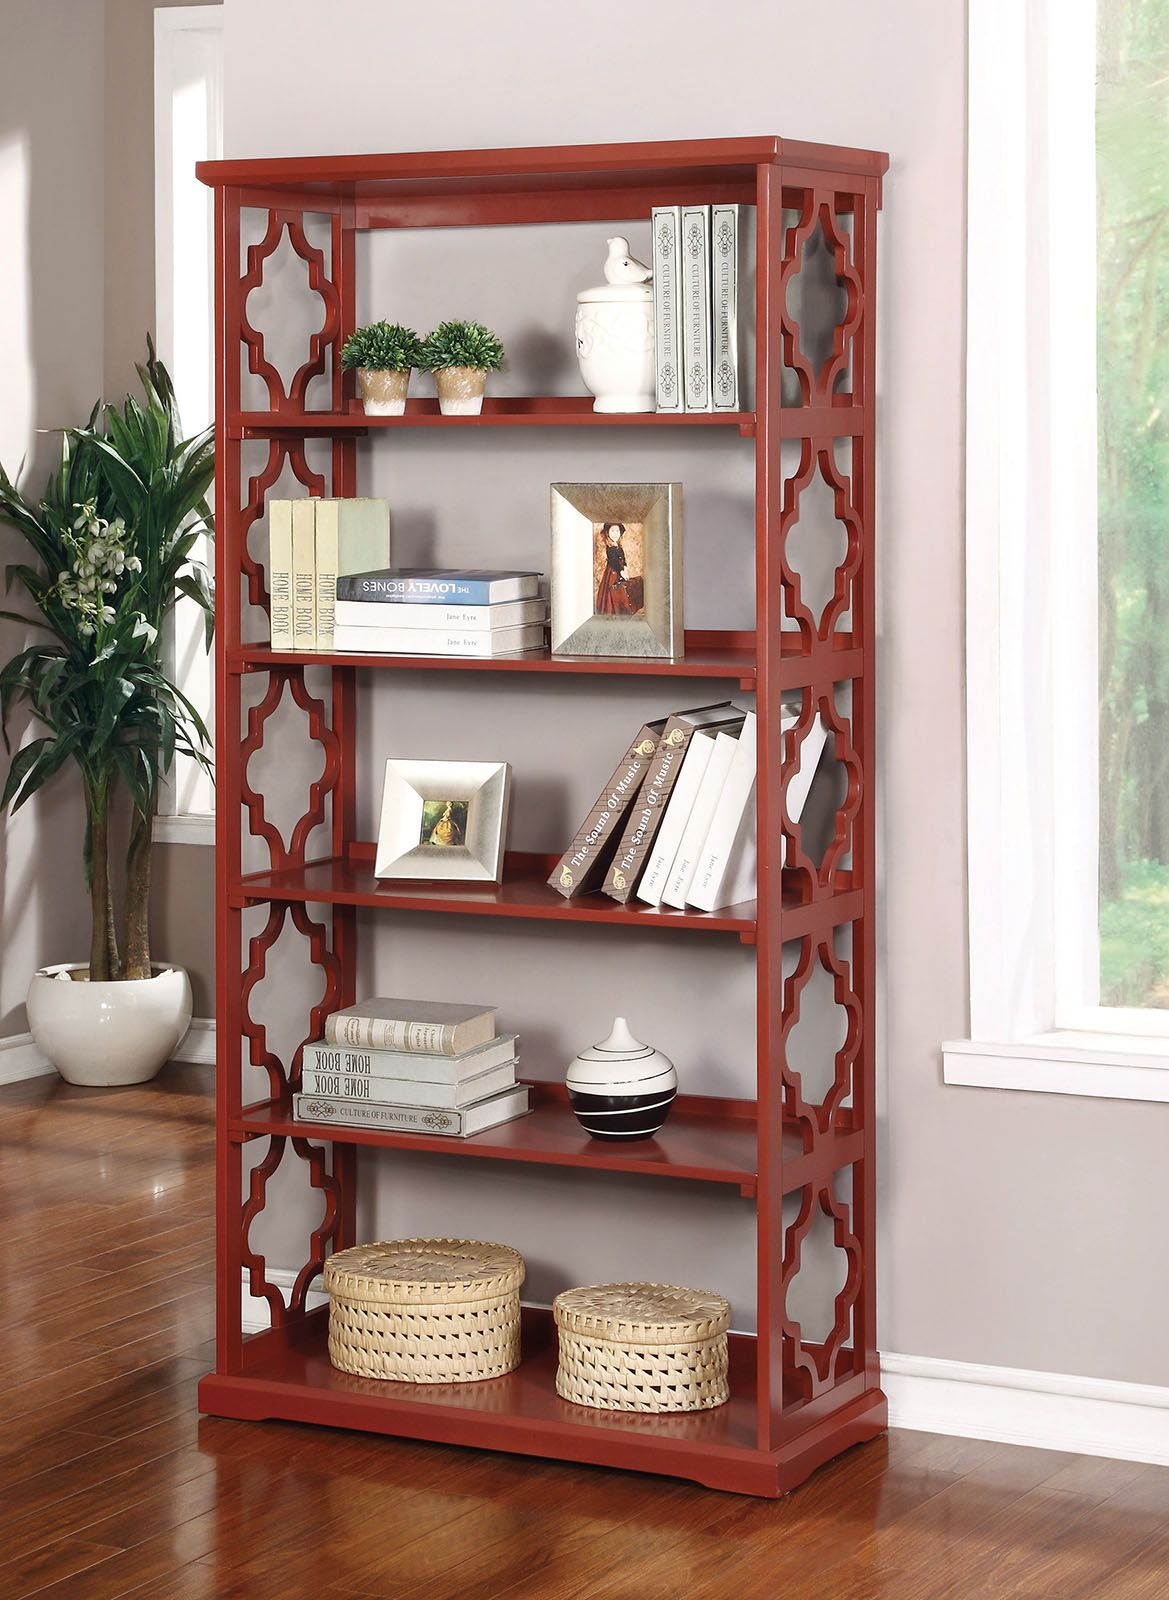 Furniture Of America CM AC6280RD Contemporary 6 Tier Bookshelf With Moroccan Inspired Accents In A Red Finish